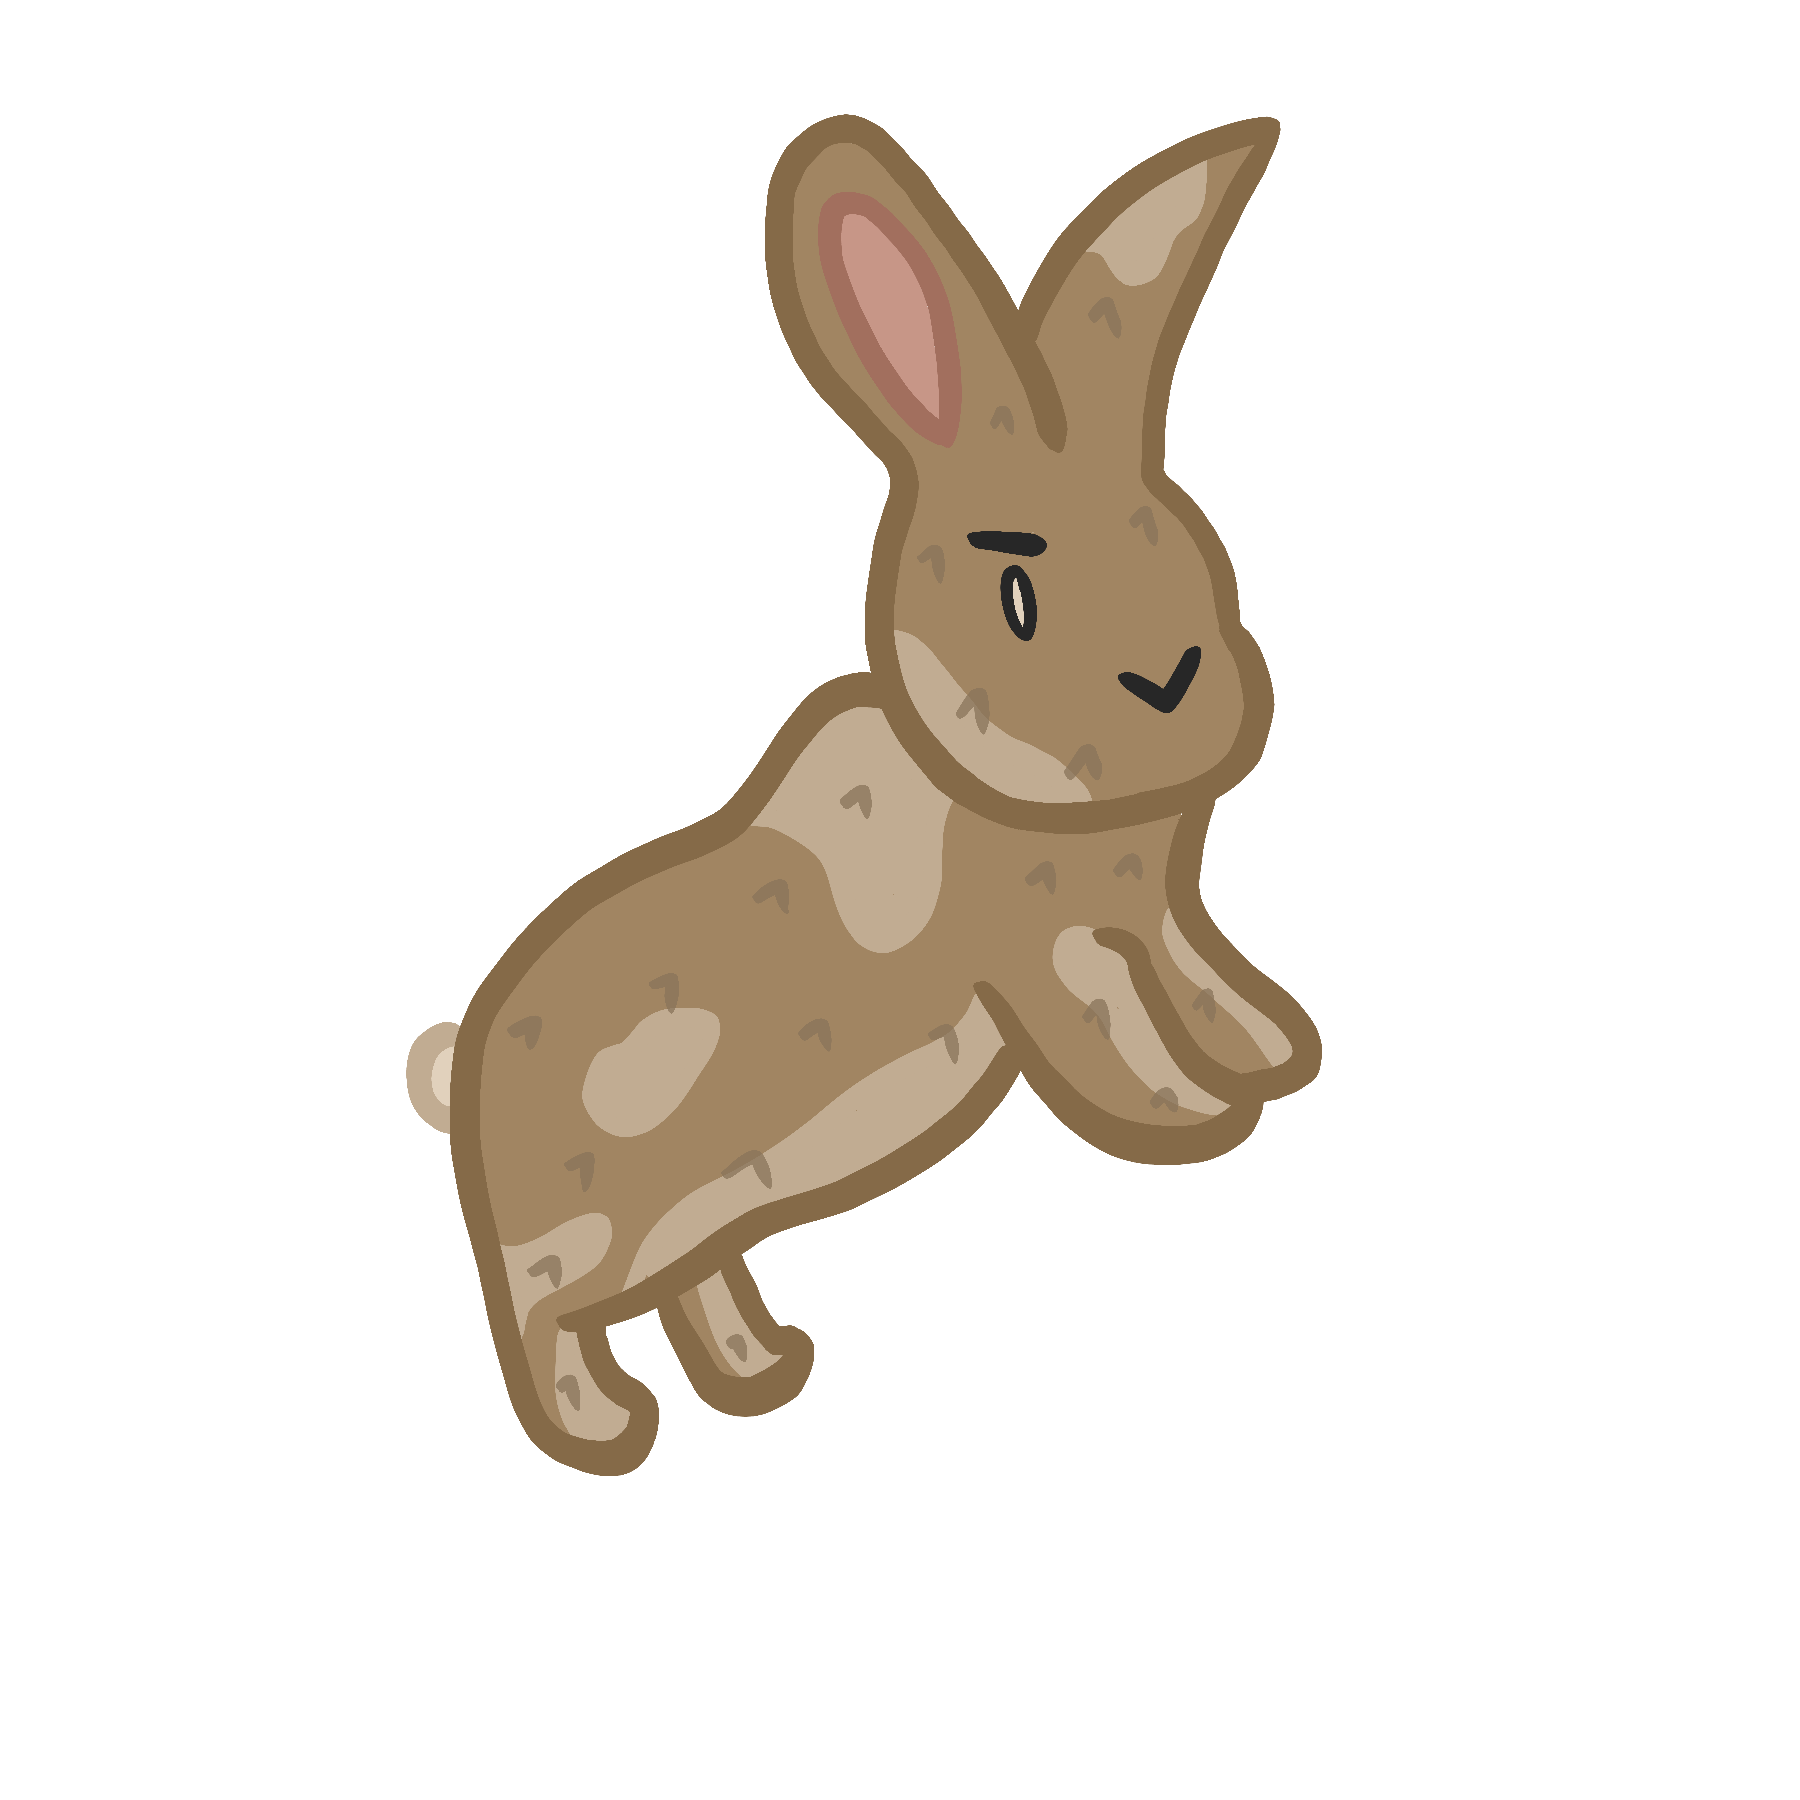 Image of a brown cartoon rabbit. On click it starts to jump.